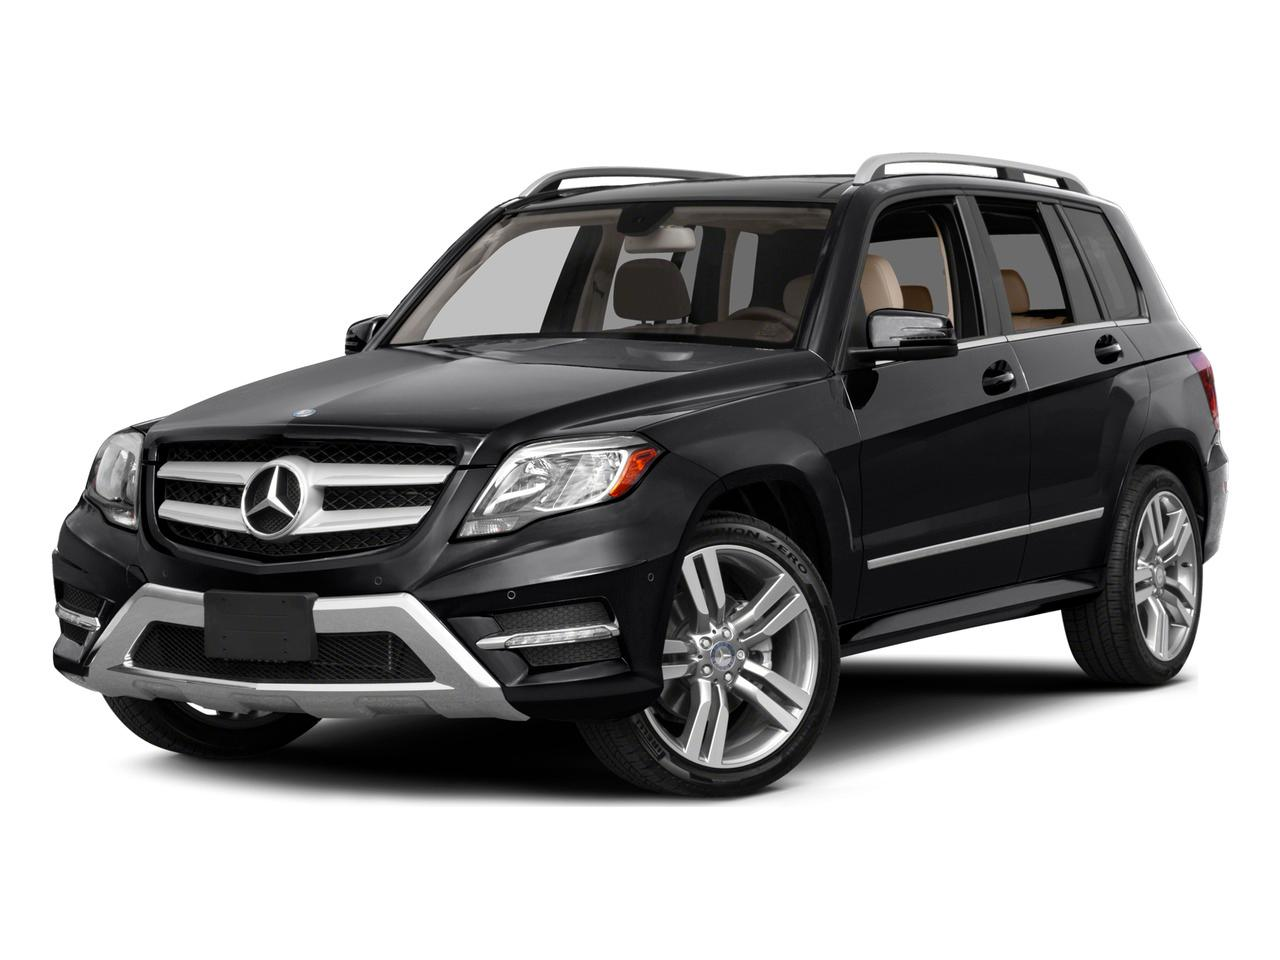 2015 Mercedes-Benz GLK-Class Vehicle Photo in Colorado Springs, CO 80905